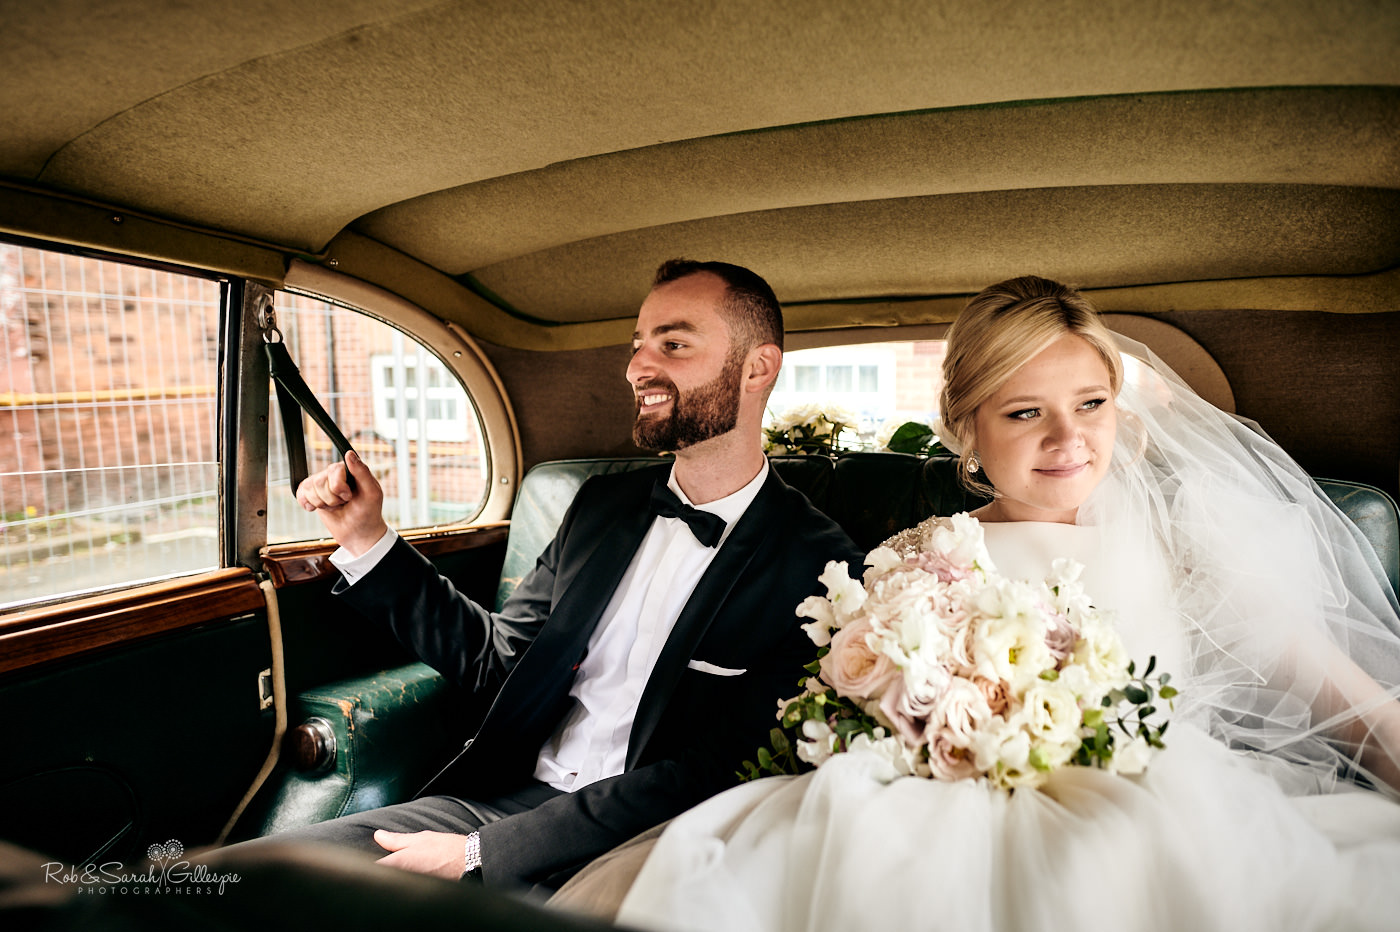 Bride and groom in wedding car